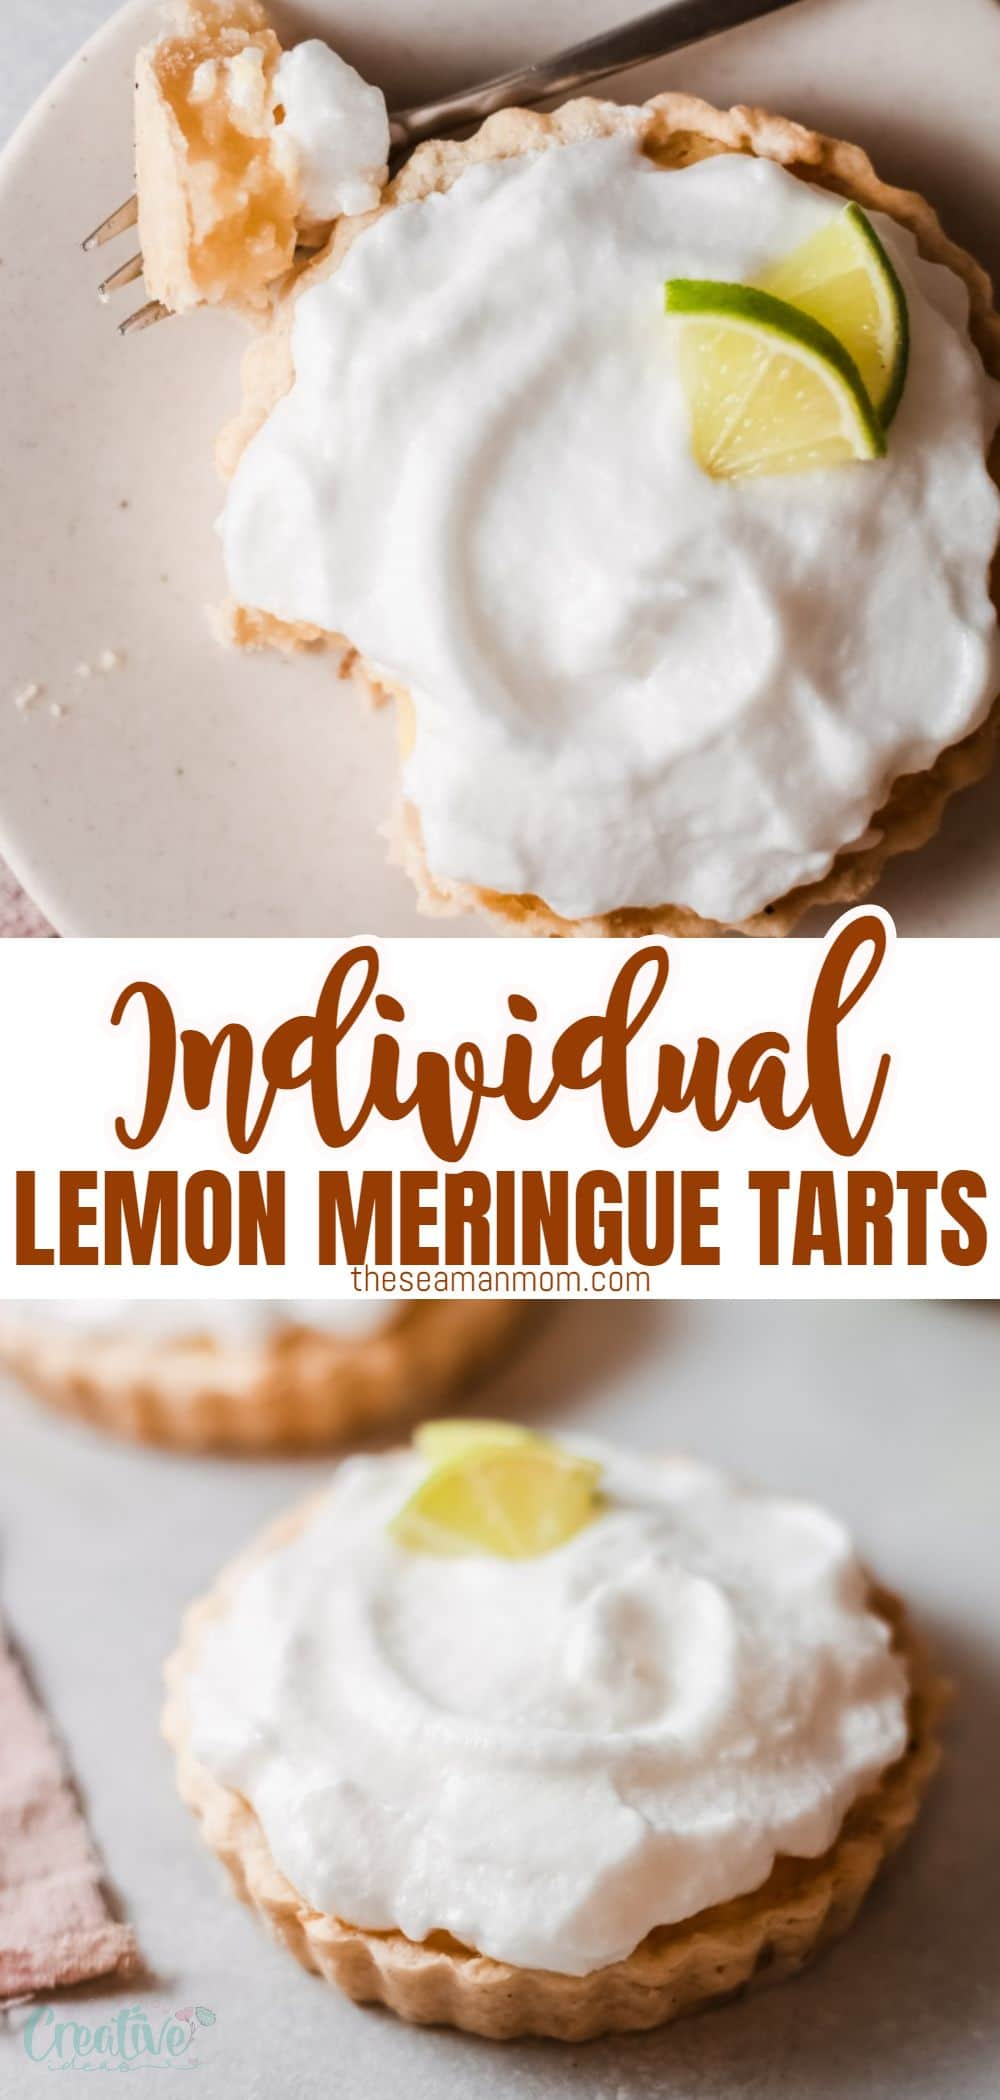 These mini lemon meringue tarts are zesty and creamy! Made with a delicate and buttery pie crust and stuffed with an incredibly delicious lemon cream filling, these mini lemon tarts are topped with an airy meringue and fresh lemon slices. Serve them anytime you are craving a light dessert! via @petroneagu